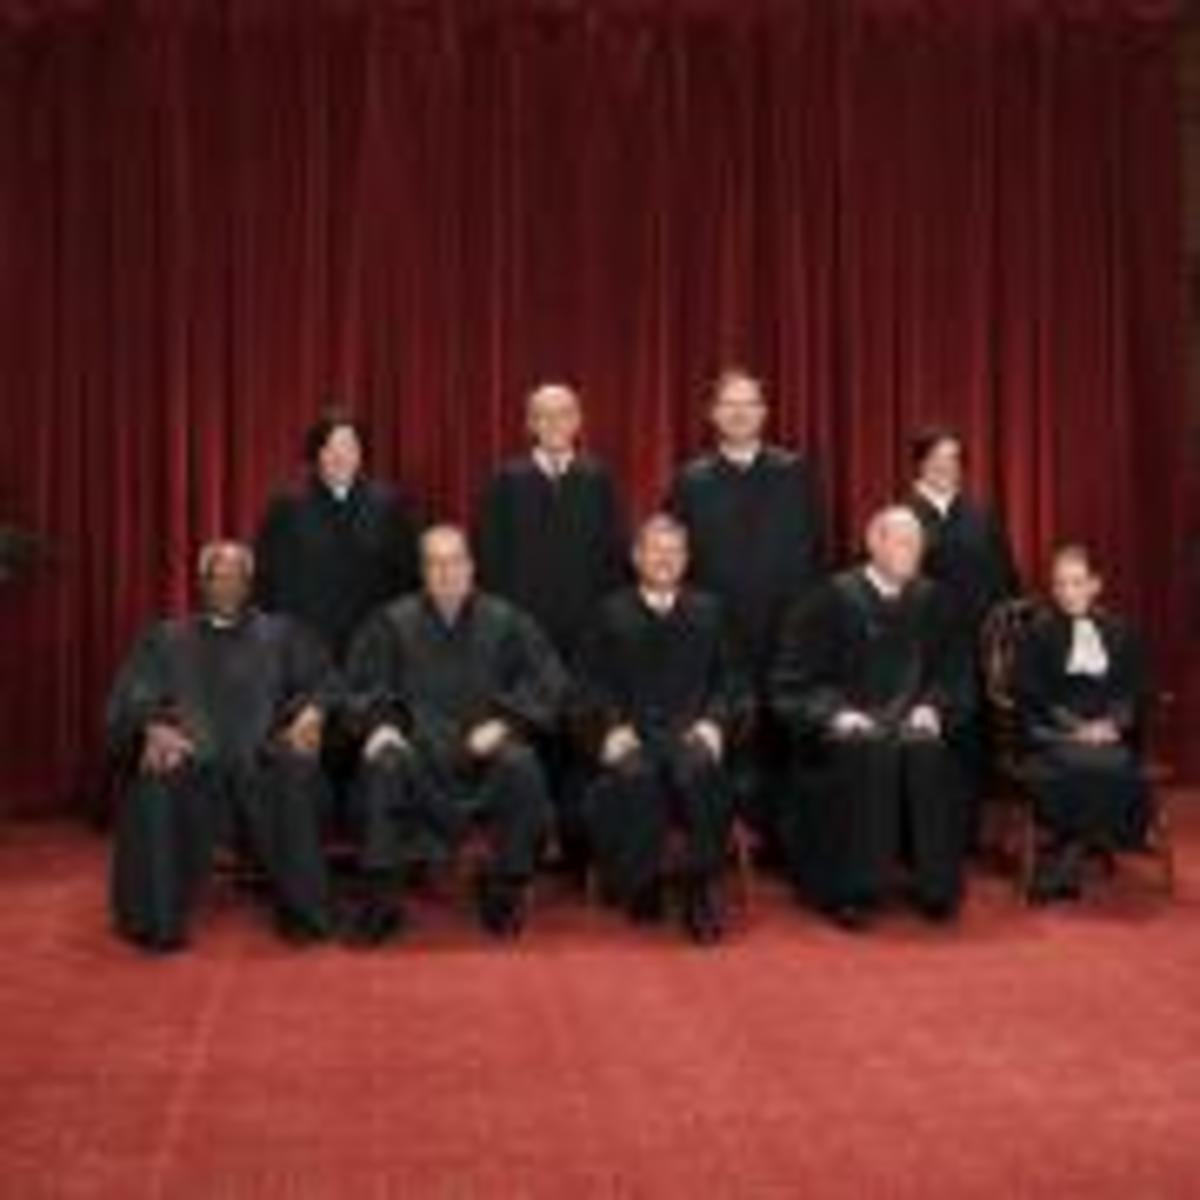 In this Oct. 8, 2010, photo, the justices of the U.S. Supreme Court gather for a group portrait at the Supreme Court Building in Washington. Seated from left to right are: Associate Justice Clarence Thomas, Associate Justice Antonin Scalia, Chief Justice John G. Roberts, Associate Justice Anthony M. Kennedy, Associate Justice Ruth Bader Ginsburg. Standing, from left are: Associate Justice Sonia Sotomayor, Associate Justice Stephen Breyer, Associate Justice Samuel Alito Jr., and Associate Justice Elena Kagan.